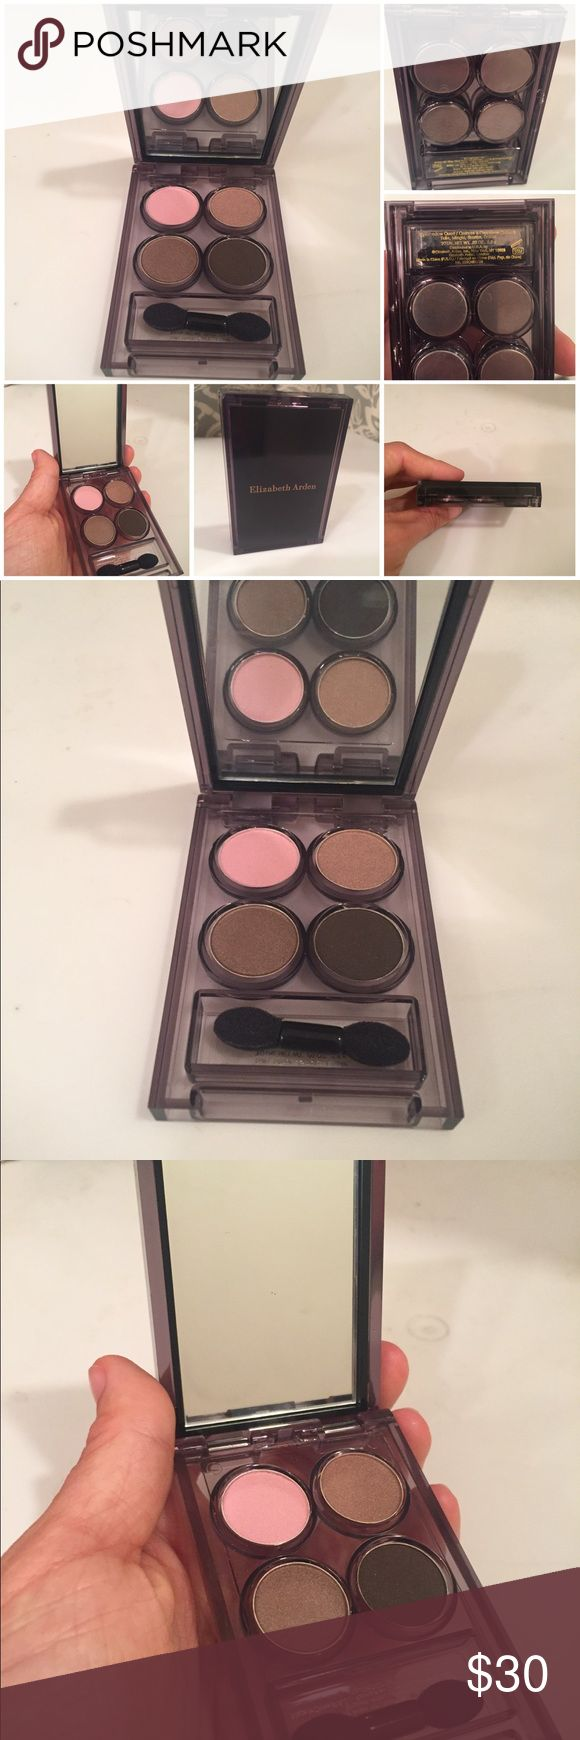 NEW Elizabeth Arden Eyeshadow Quad New, never used, Elizabeth Arden eyeshadow quad compact with mirror and clean brush: tulle, mingle, smoke, & ember (2.8g). From a clean and smoke free home. Please ask questions prior to purchasing. Elizabeth Arden Makeup Eyeshadow